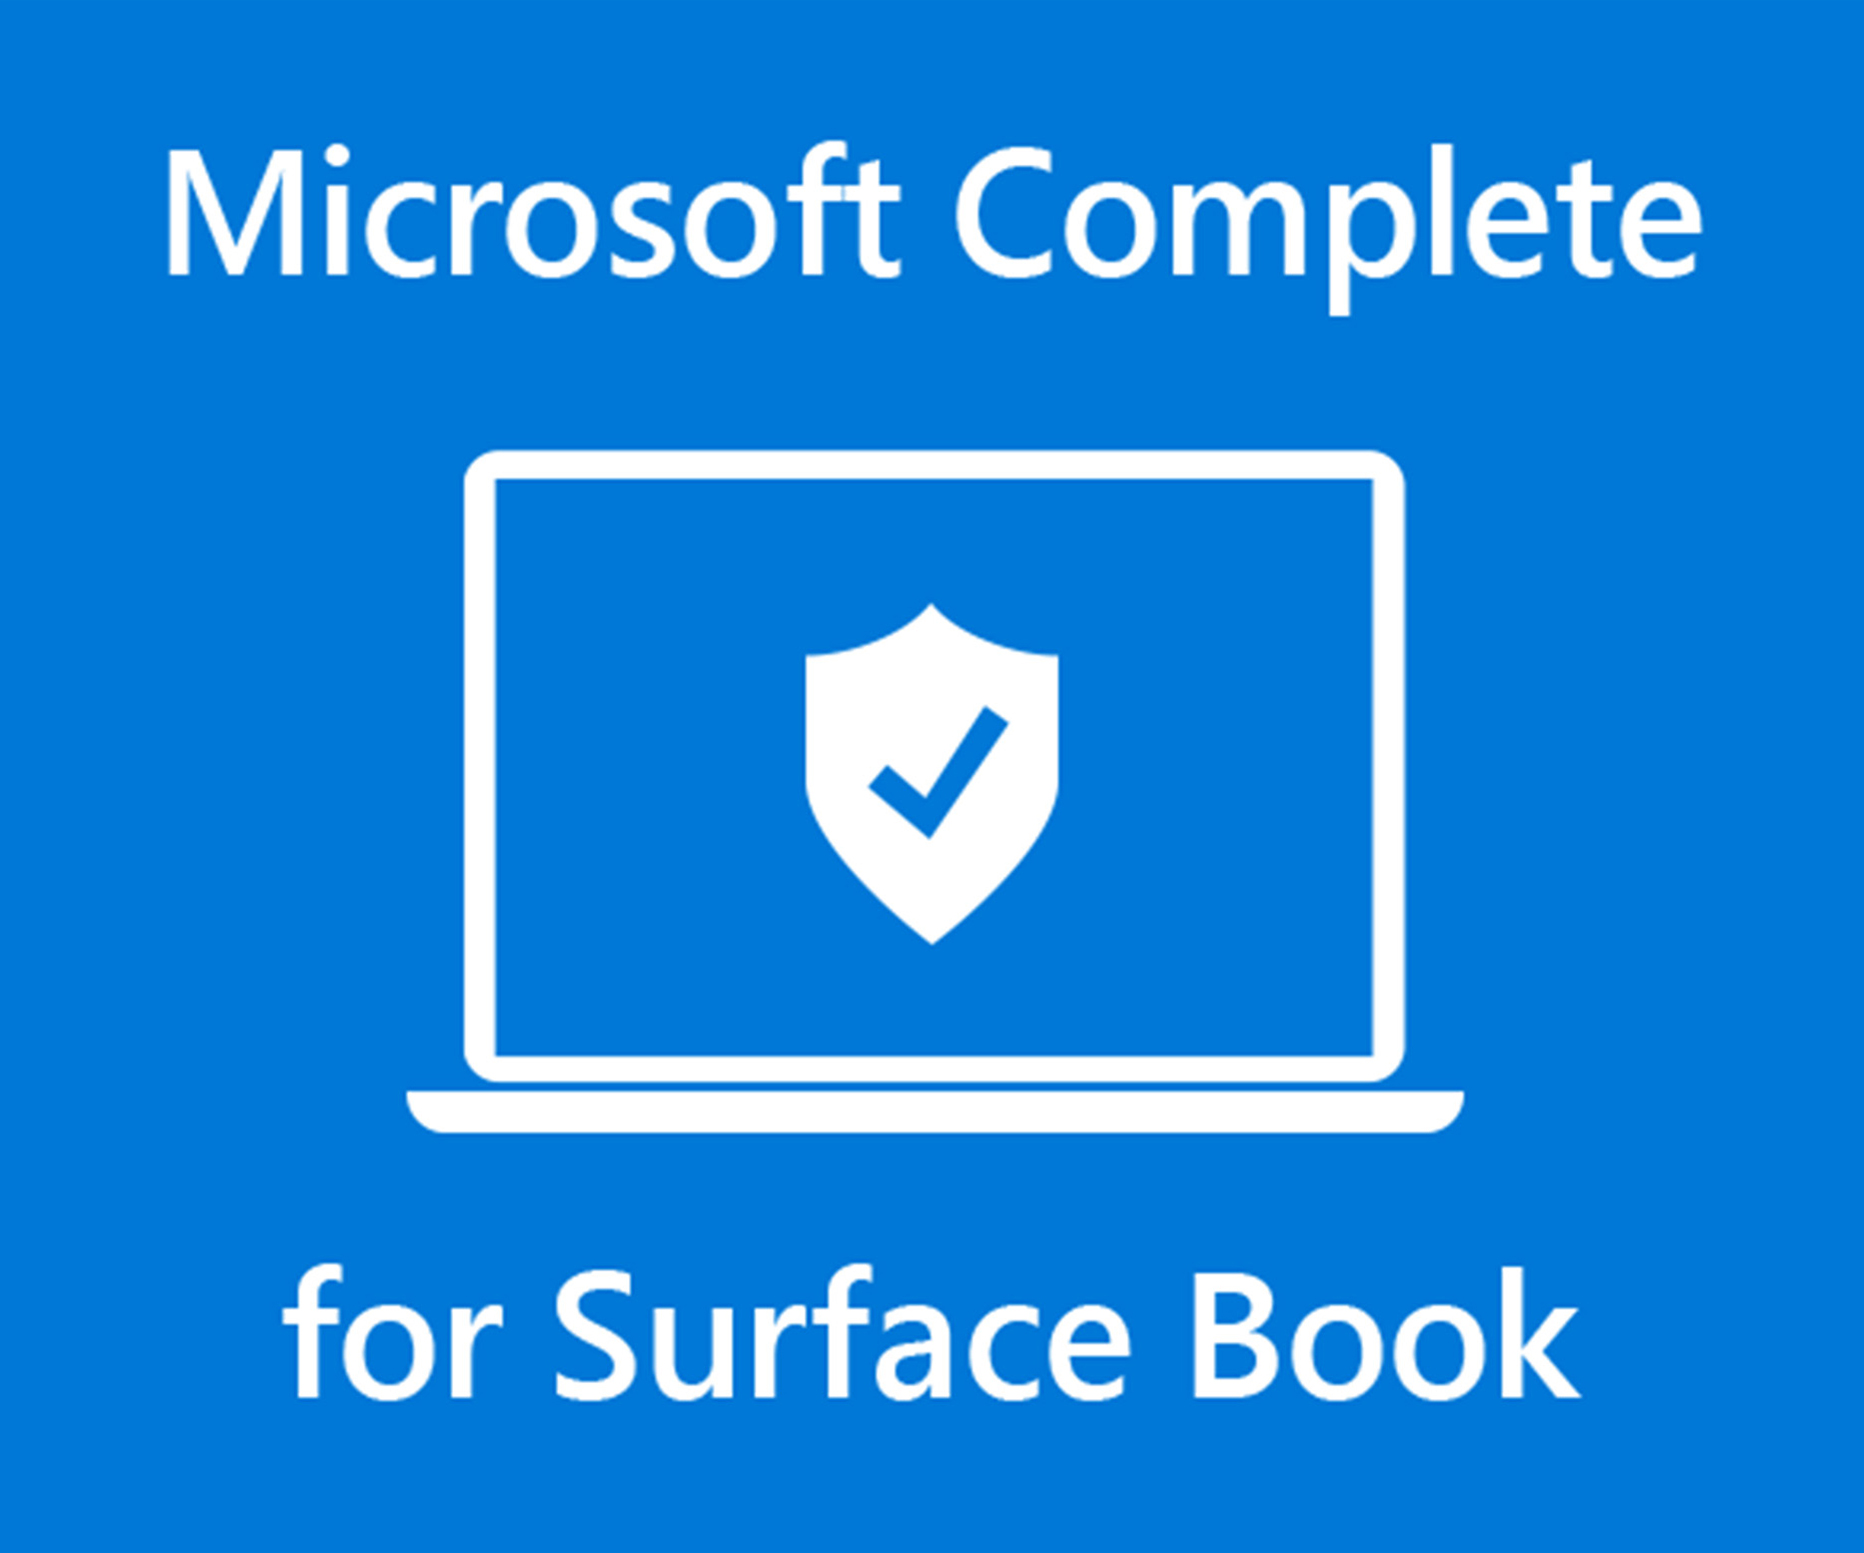 Microsoft Complete for Surface Book